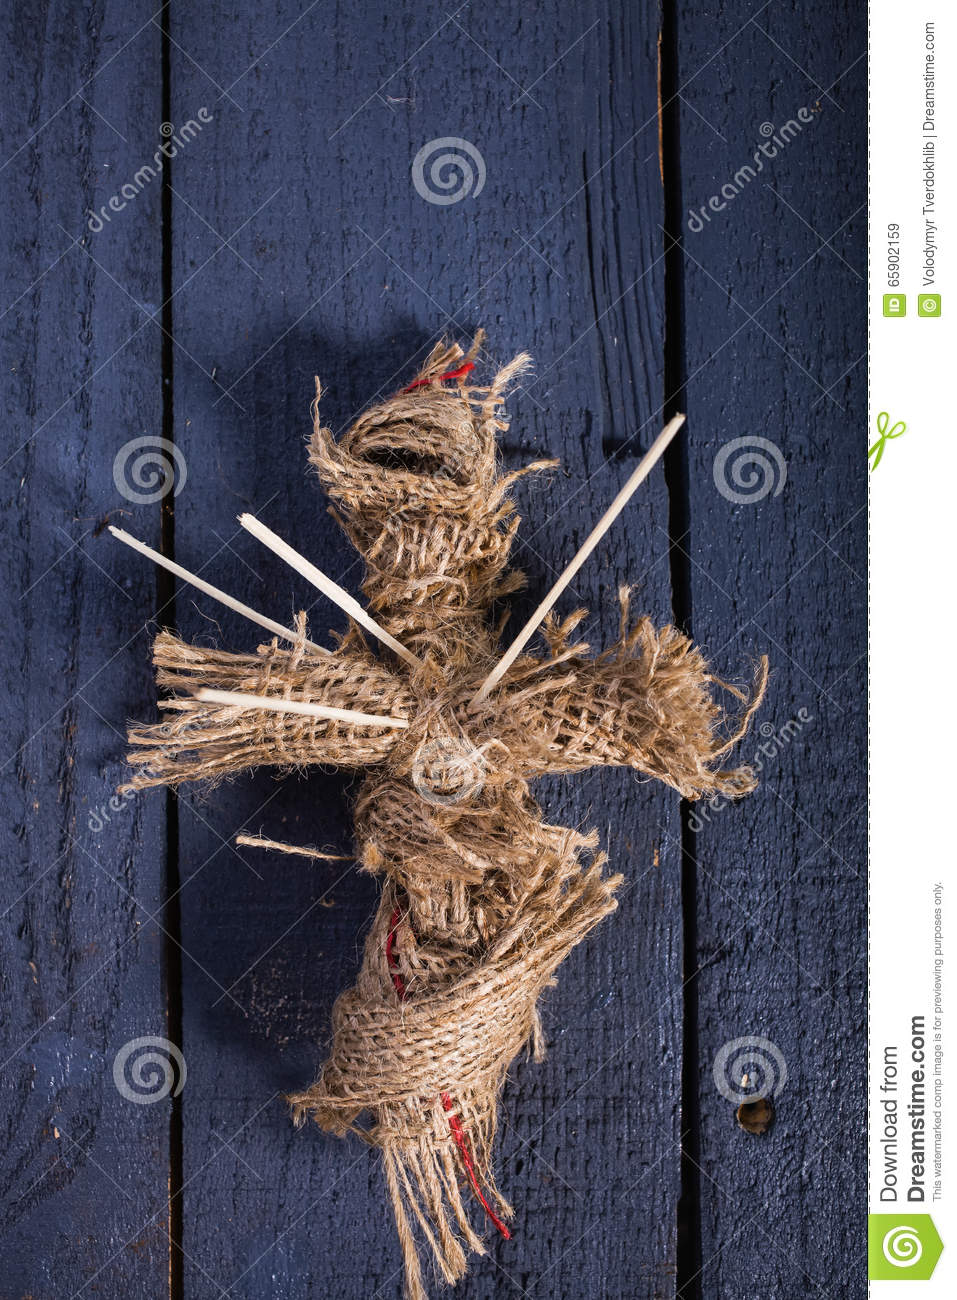 Halloween Burlap Doll Stock Image Image Of Pierced Horror 65902159